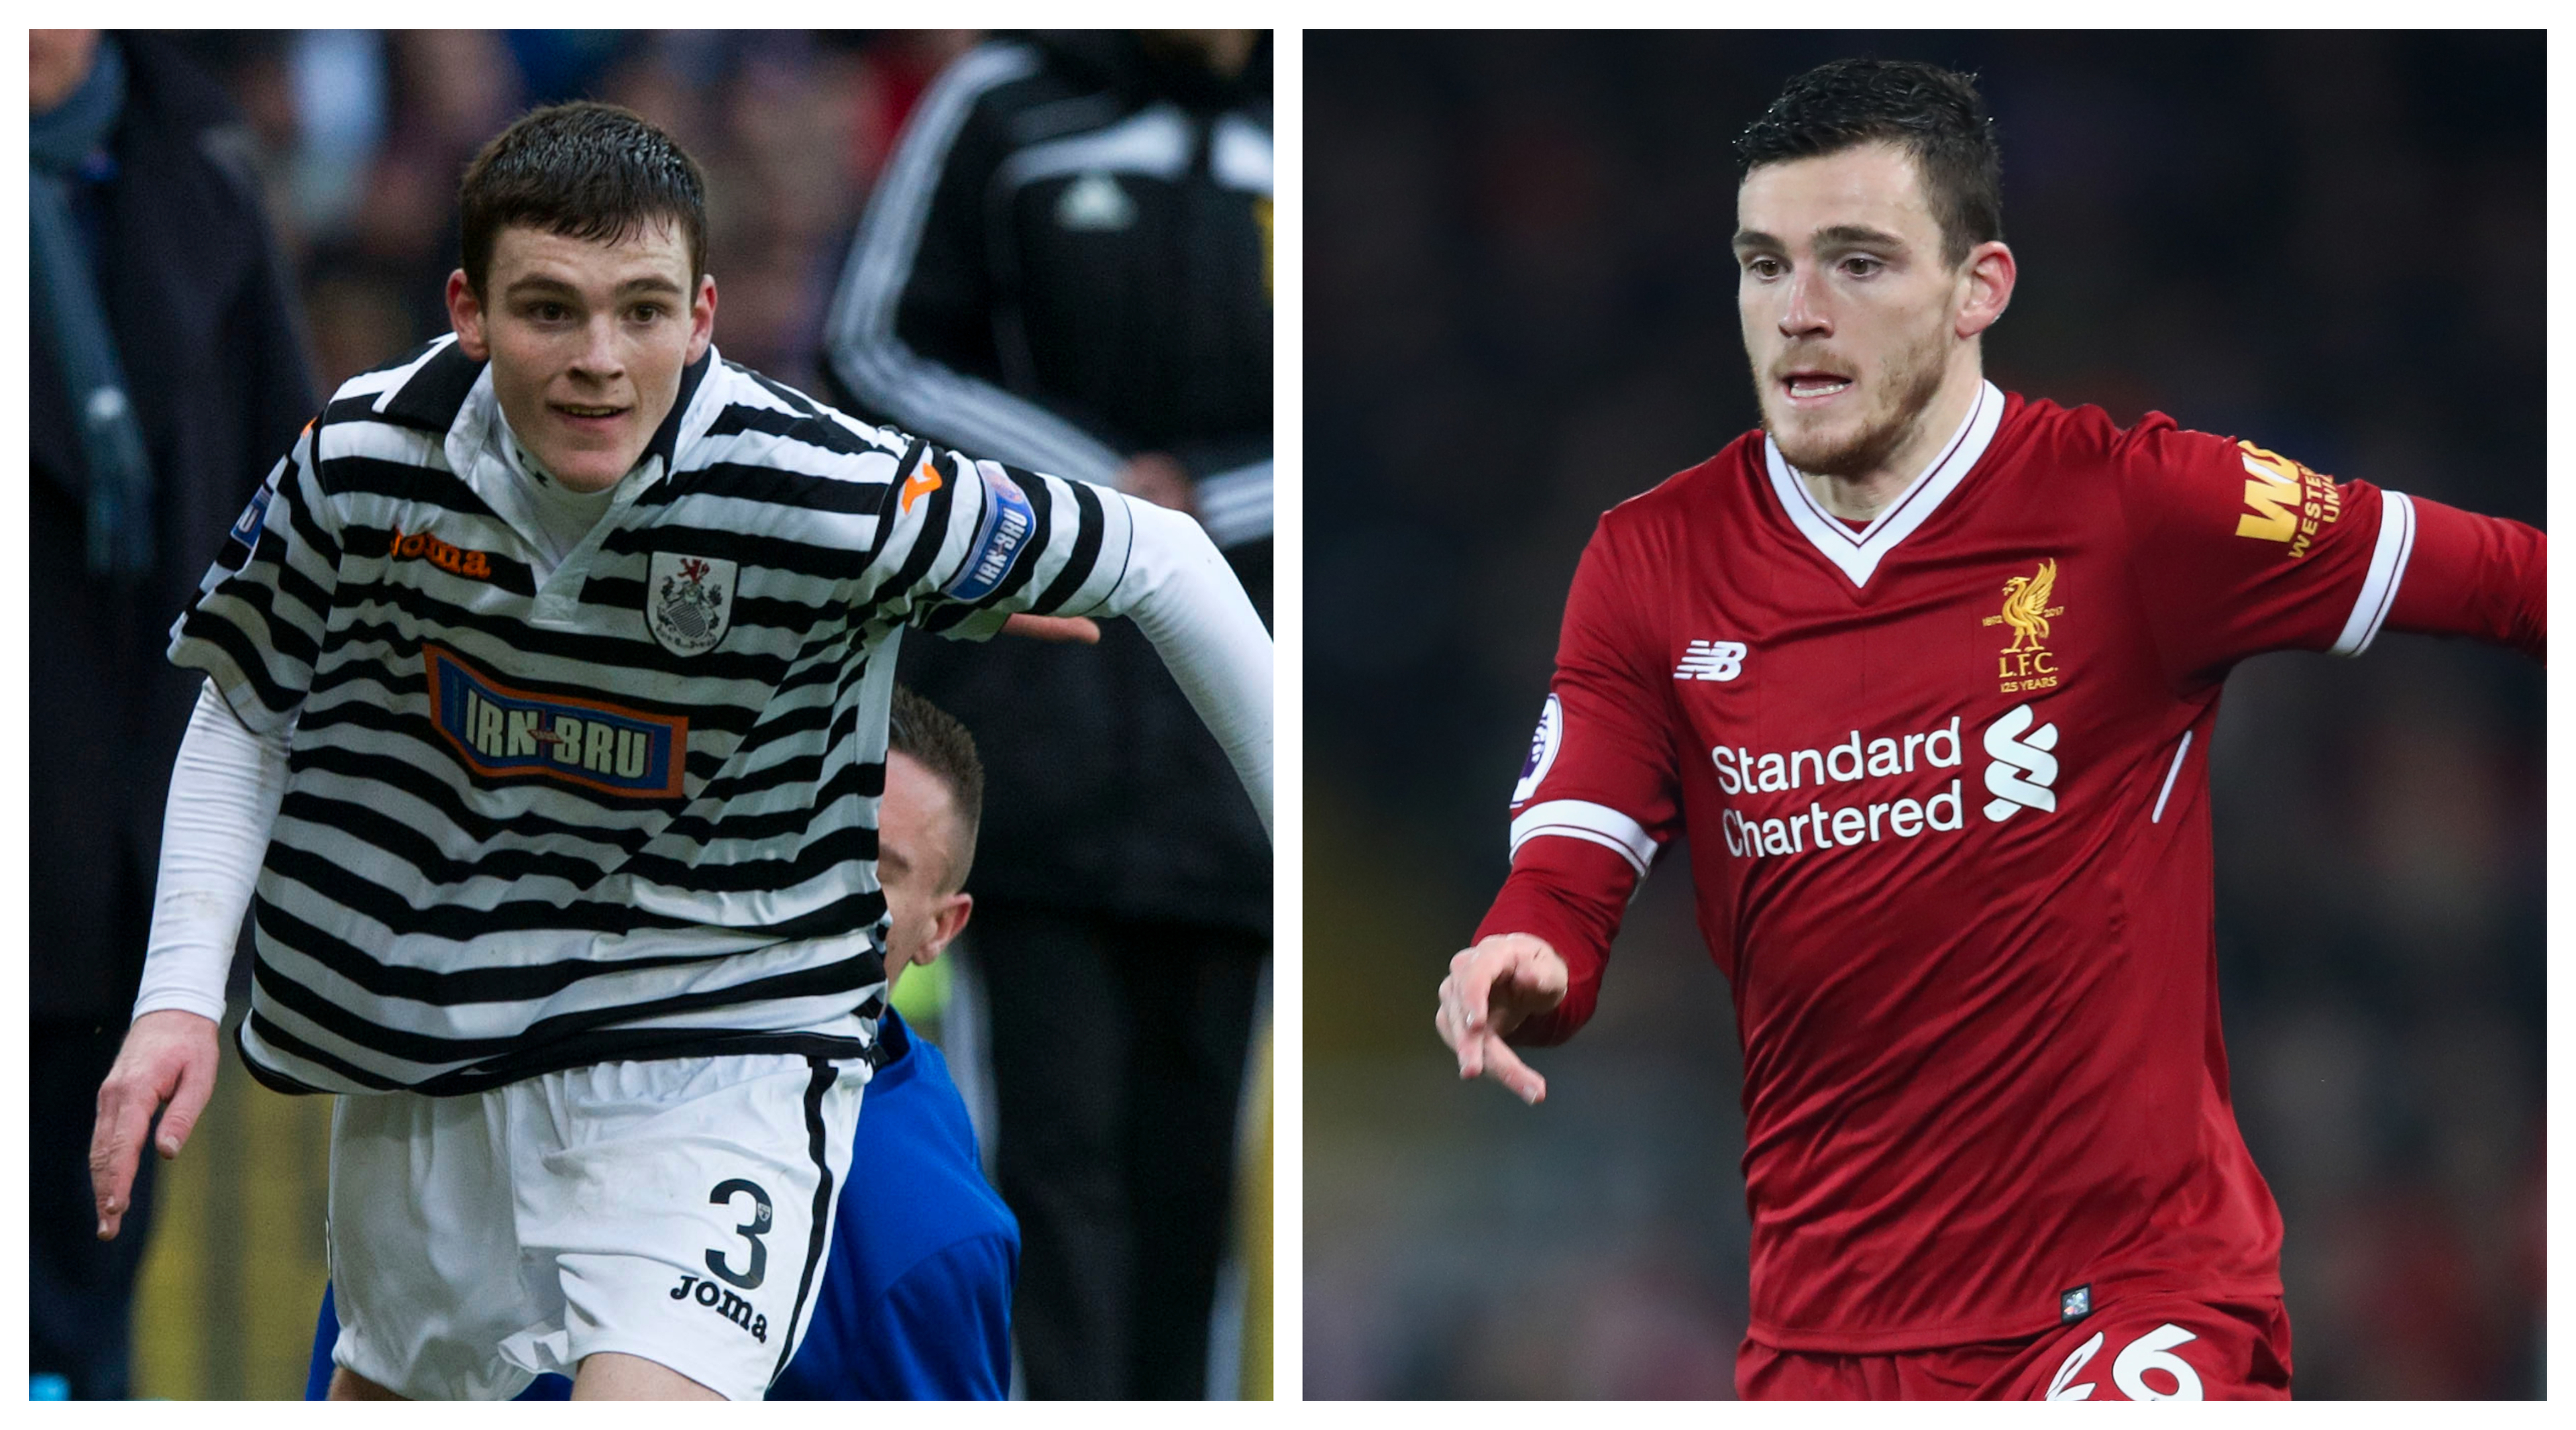 Andrew Robertson in action for Queen's Park (left) and Liverpool (SNS Group & Clive Brunskill / Getty Images)